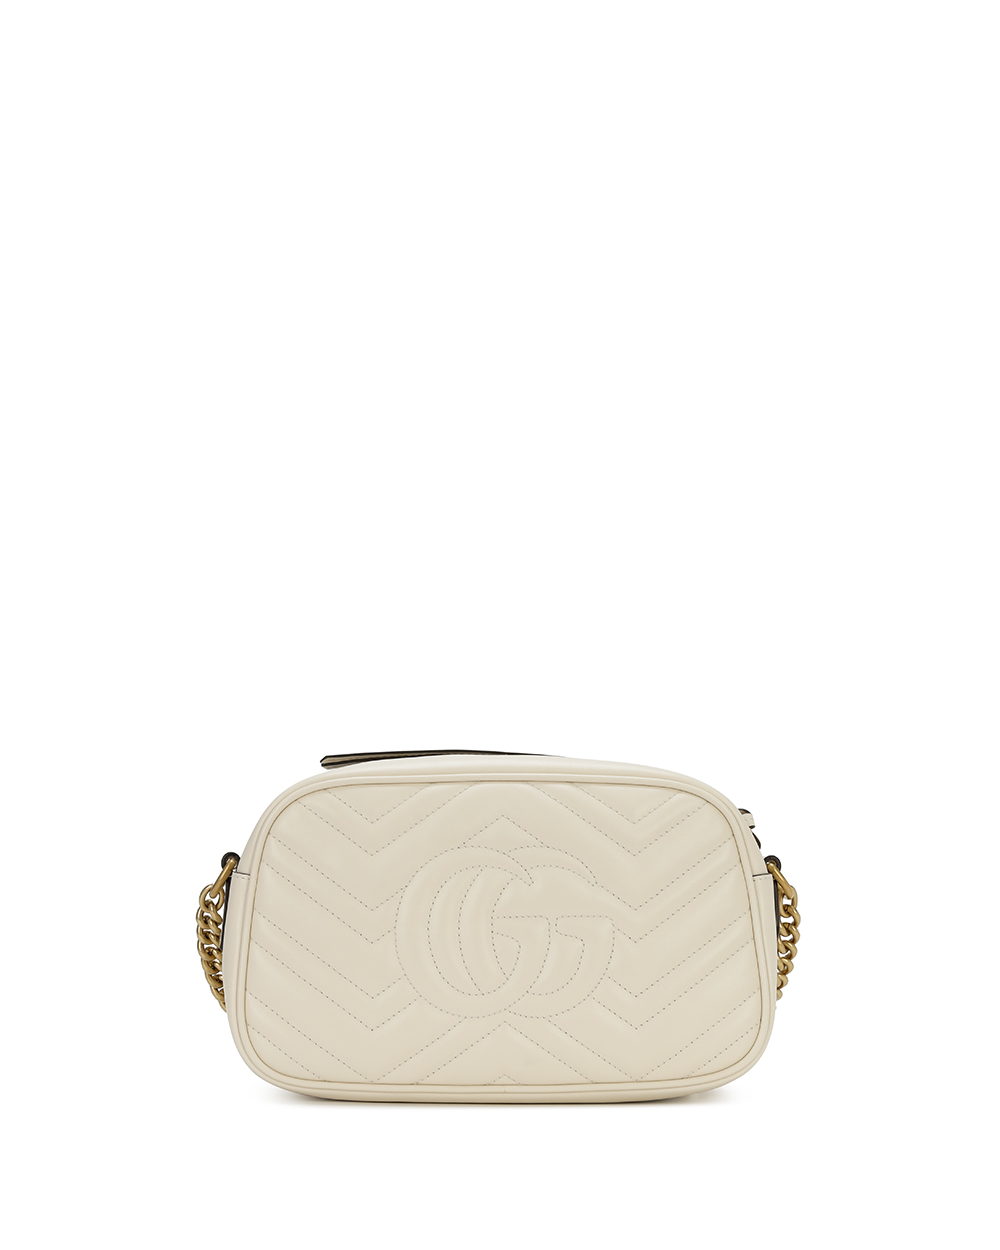 GG Marmont small shoulder bag 4